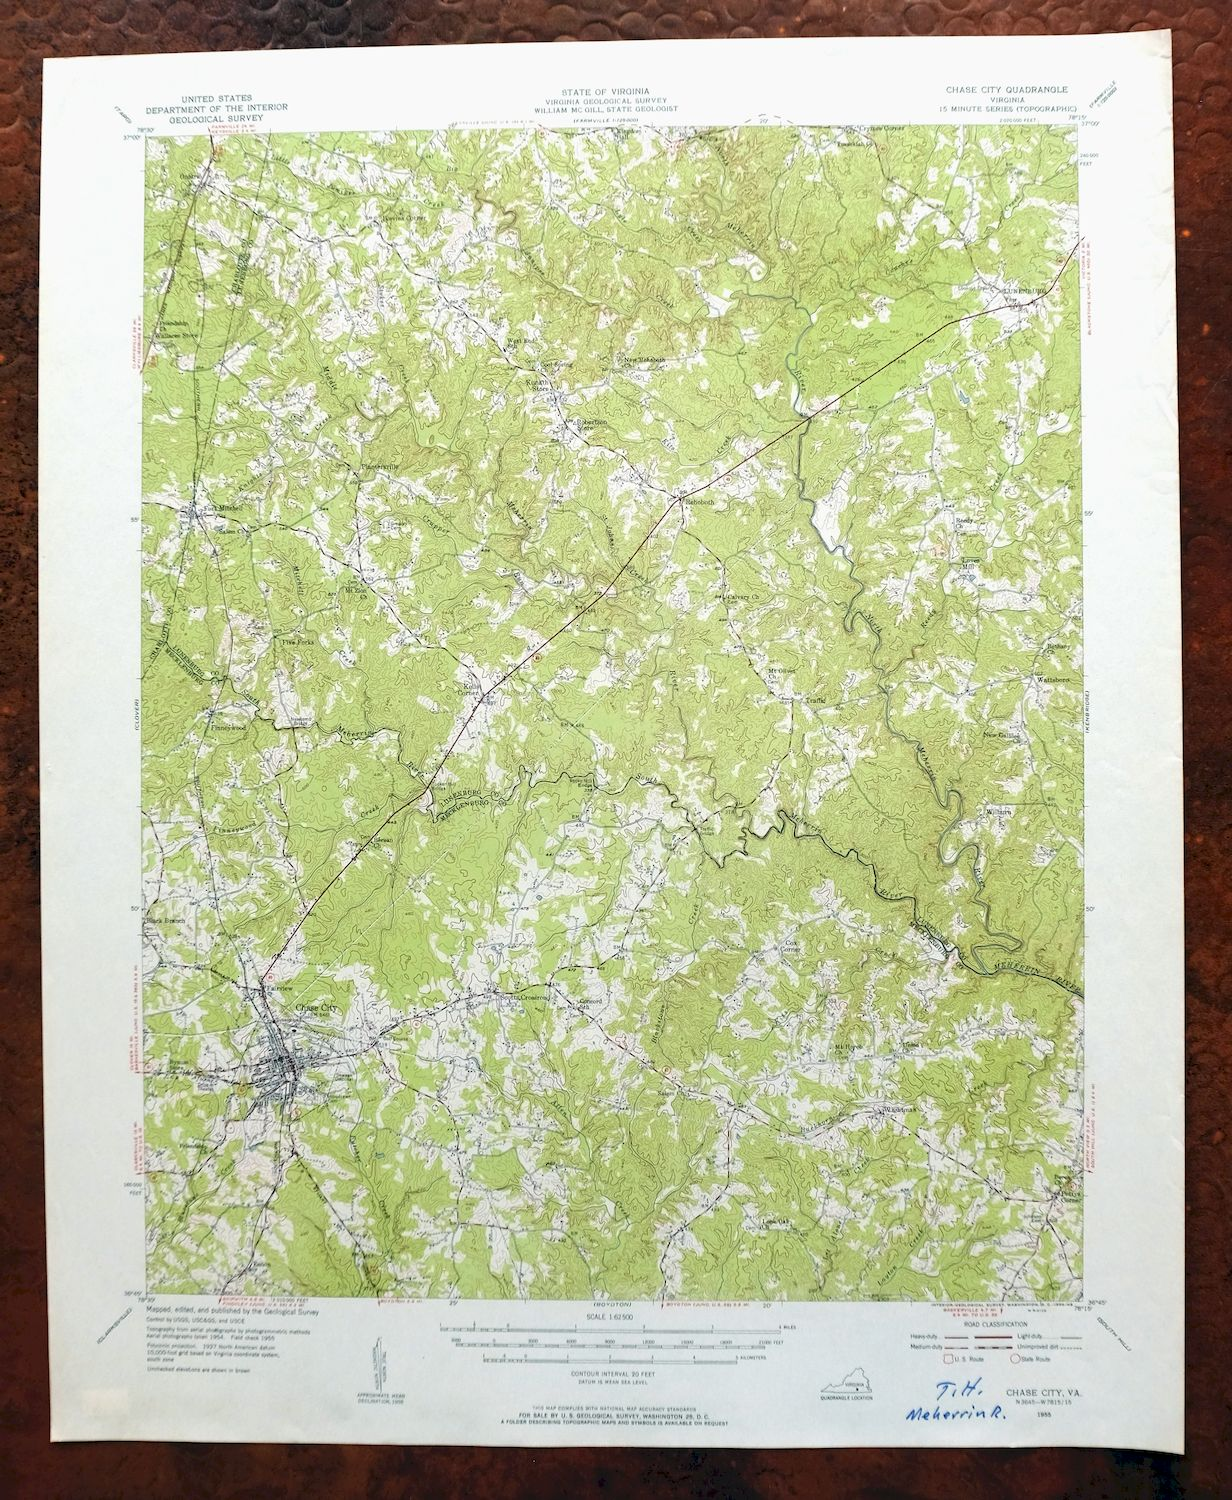 Chase City Virginia Vintage Usgs Topographic Map